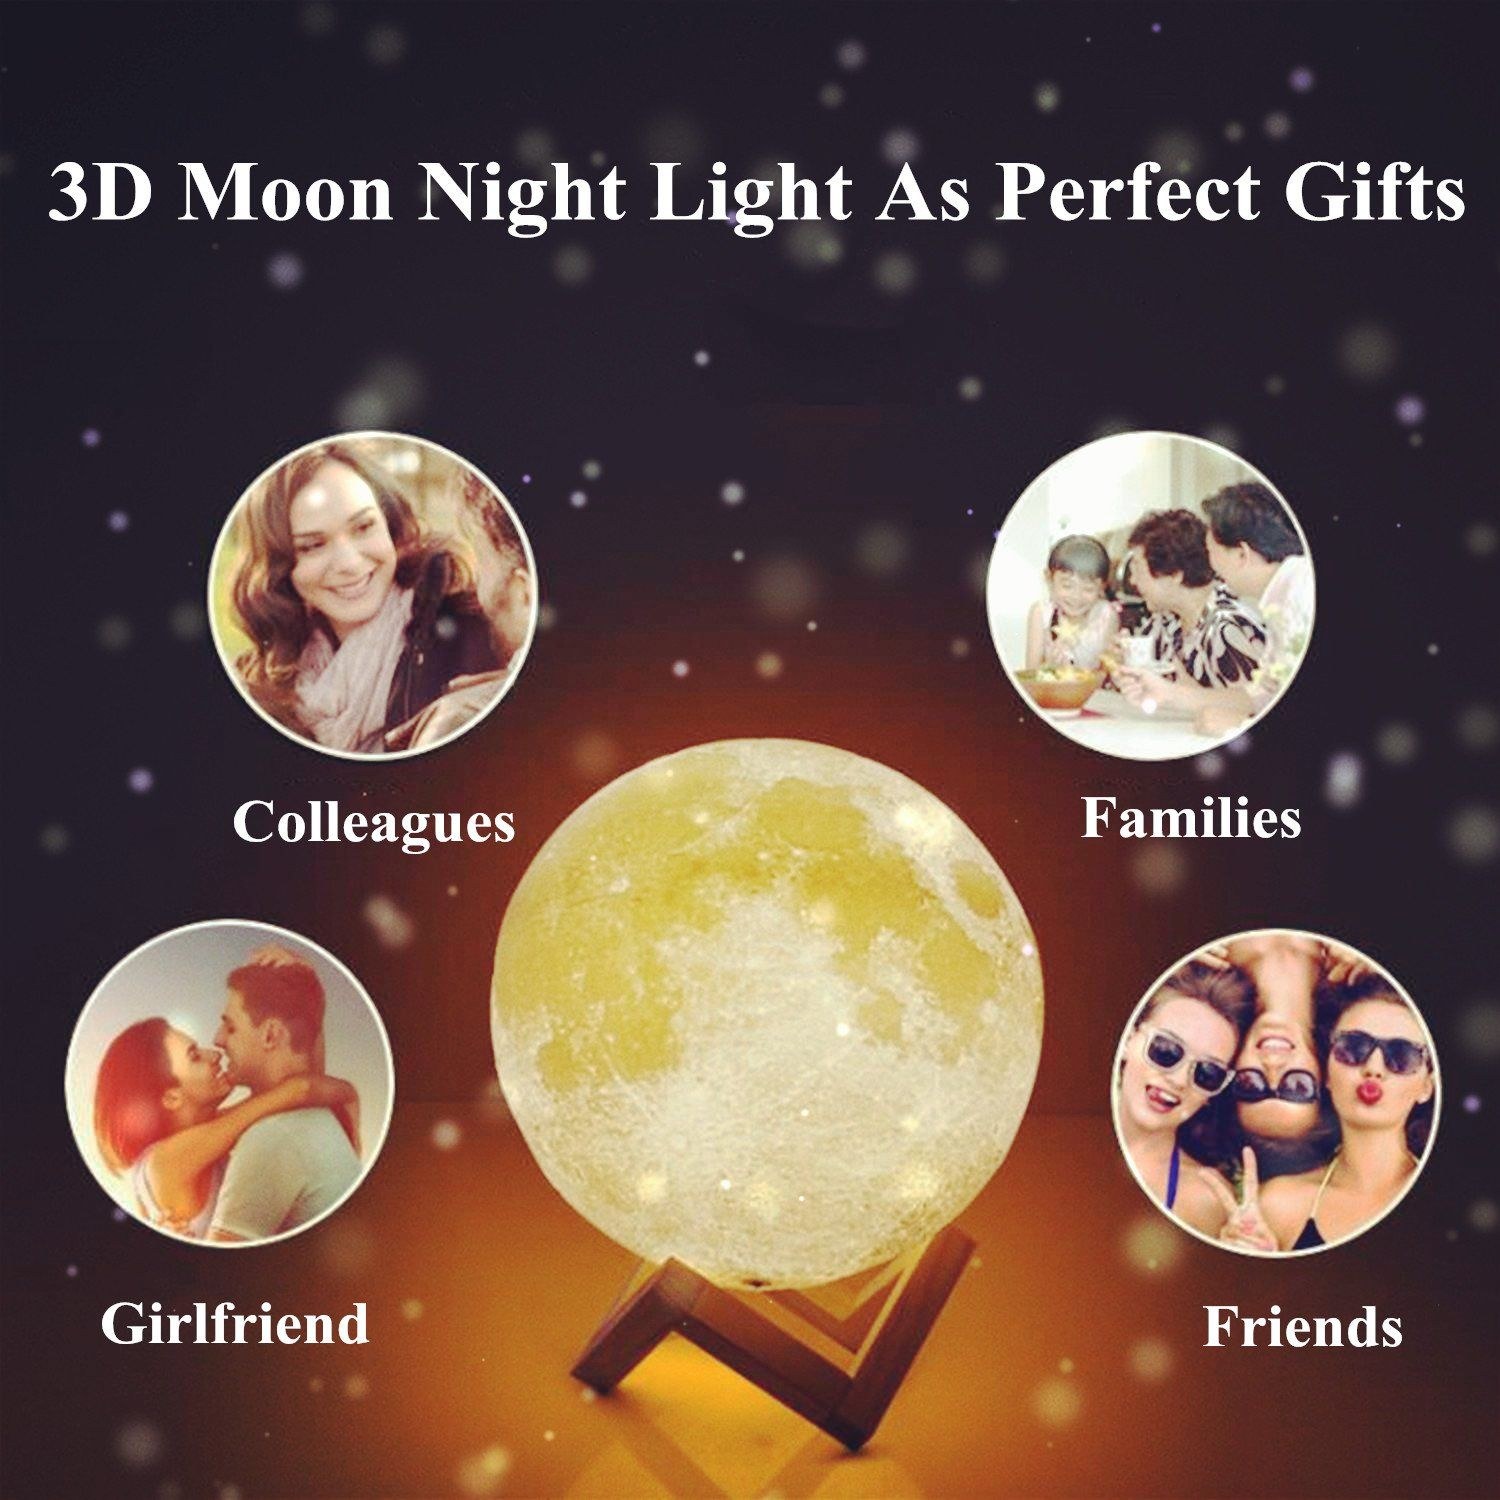 Moon Lamp 3d Priting Nightlight Lunar Led Decorative Lights With Touch Sensor Switch Usb Charging N Nursery Night Light Led Decorative Lights Light Decorations